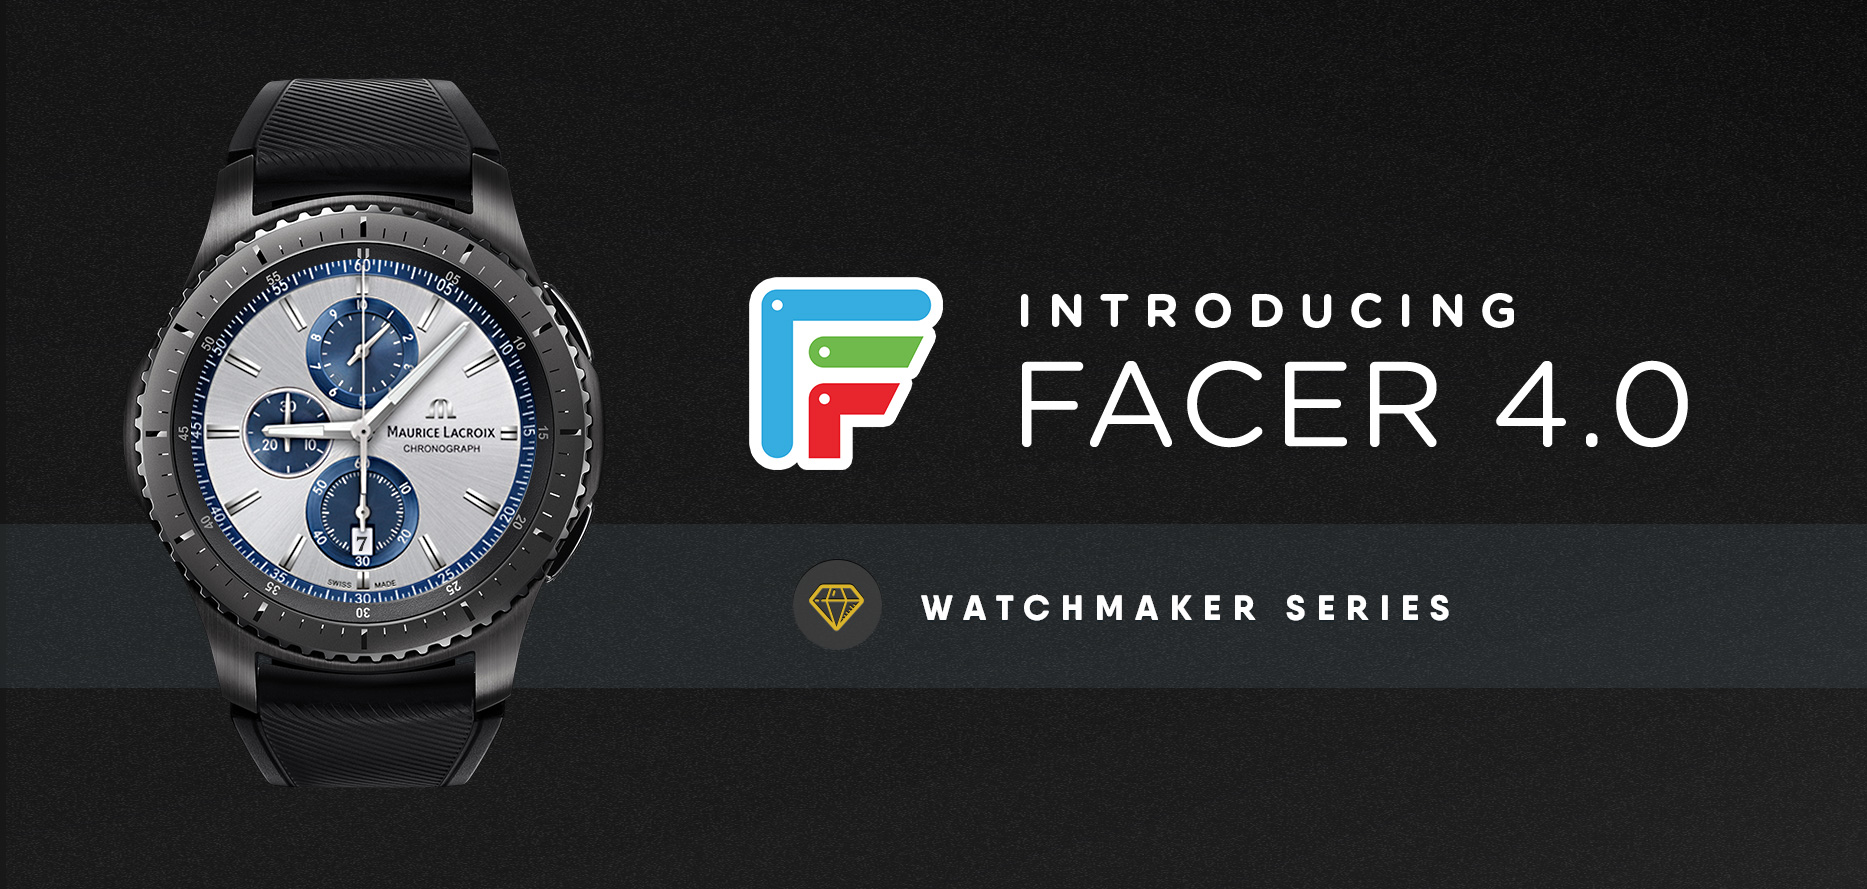 Introducing Facer 4 0 And The Watchmaker Series Facer